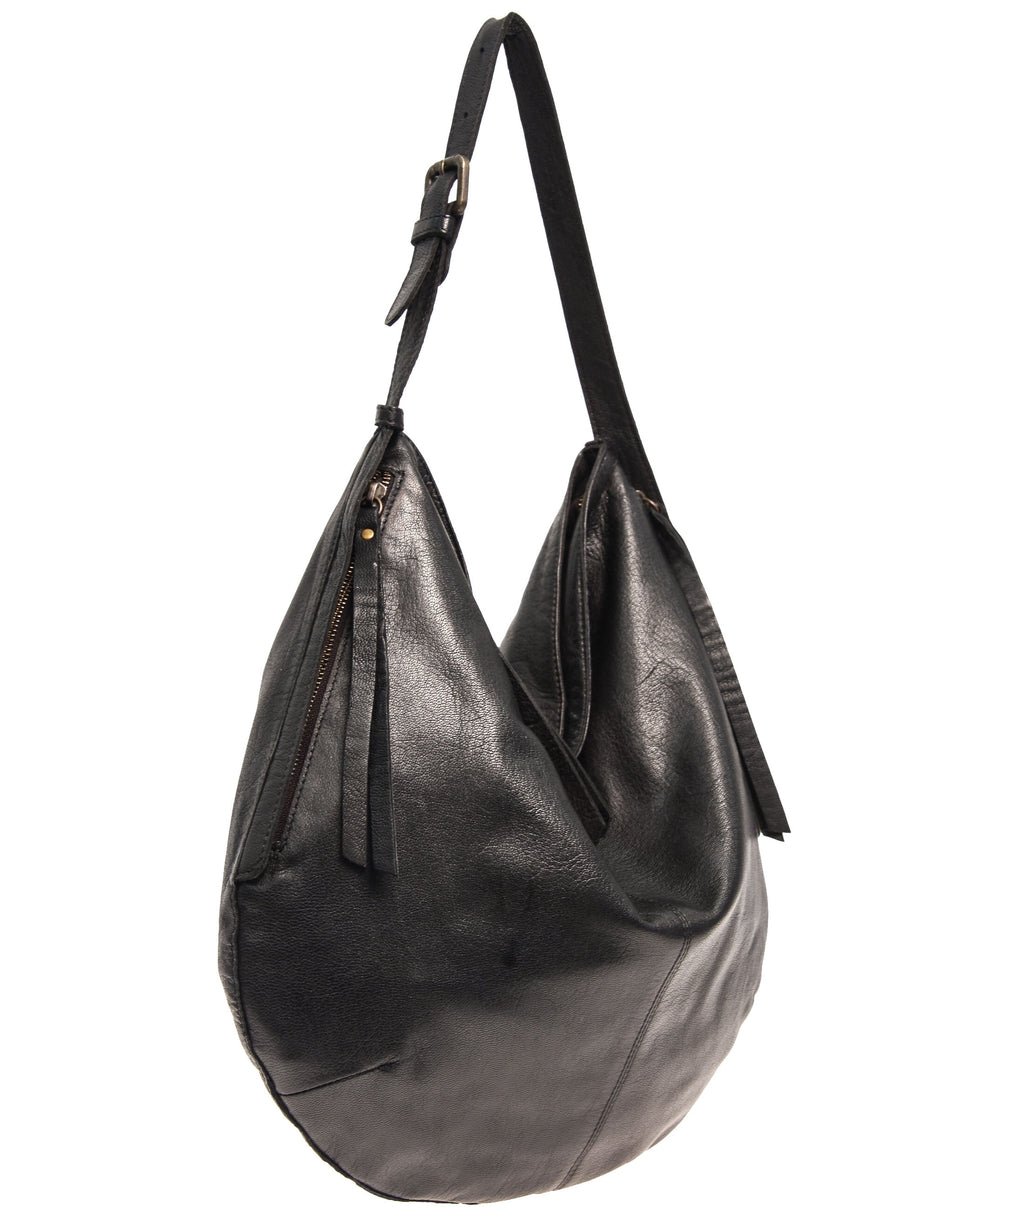 Tano Rounded Hobo with Two Side Zip Pockets (2531220947028)